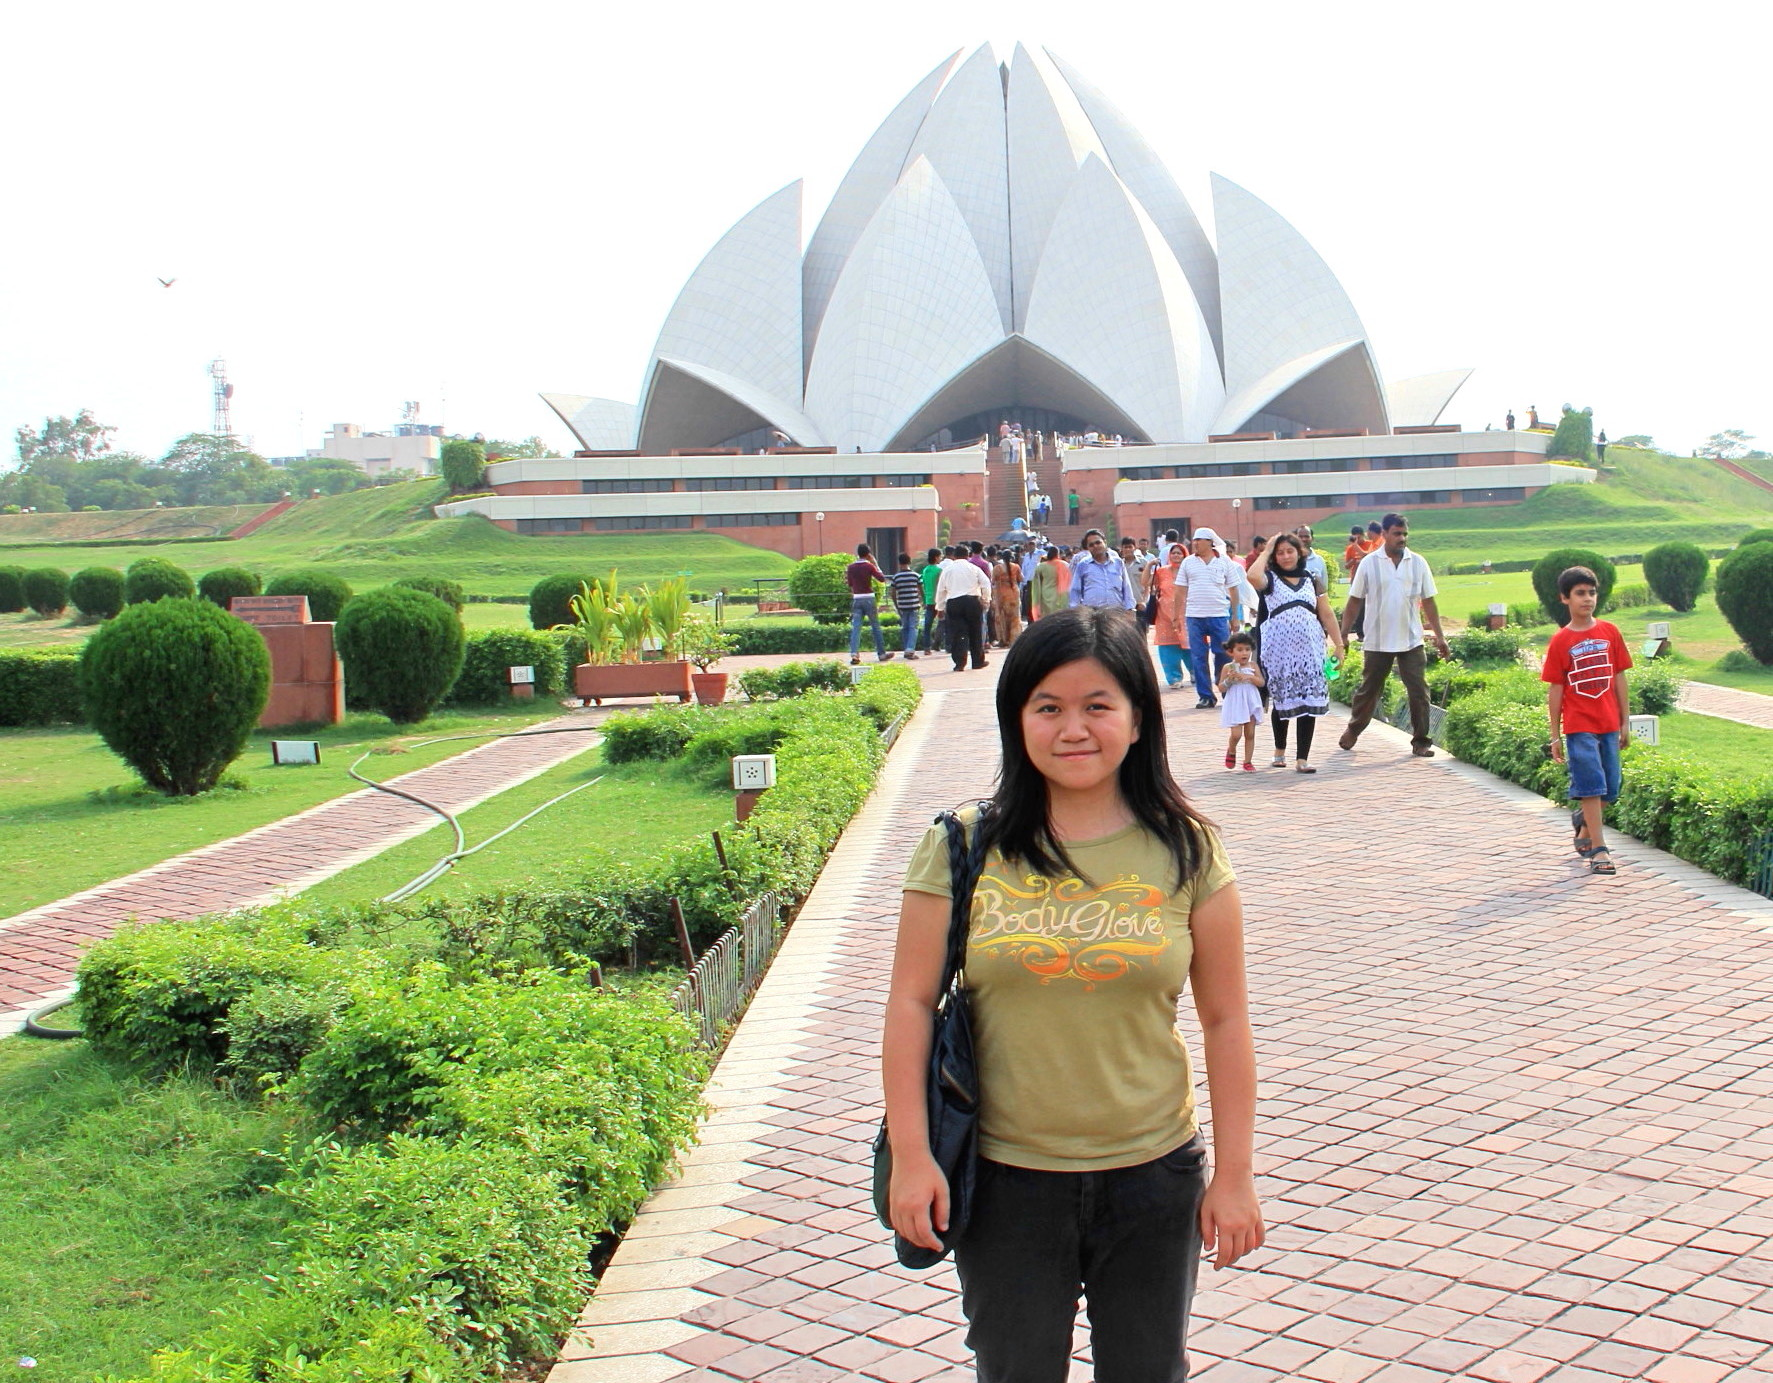 Farewell to Elena, Exploring Red Fort, Bahai Lotus Temple, Qutub Minar, Akshardham, Great India Place